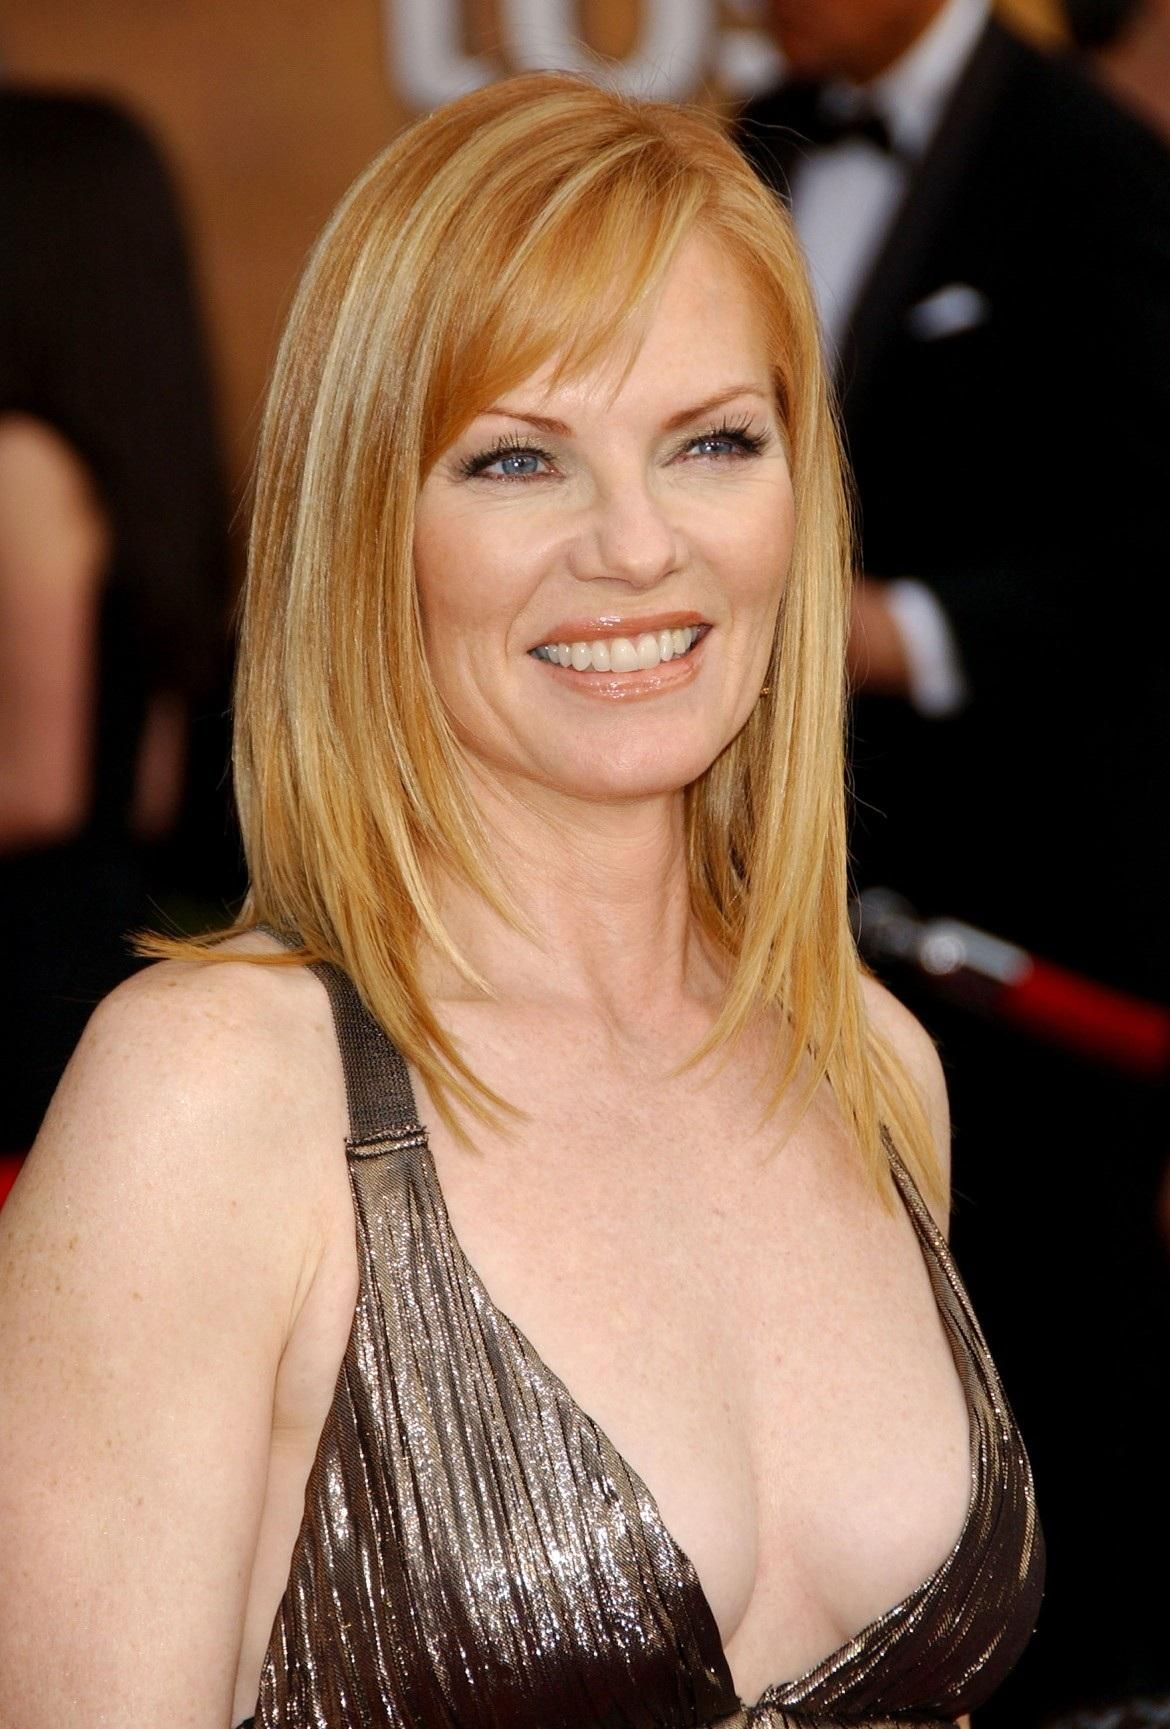 photo Marg Helgenberger born November 16, 1958 (age 59)